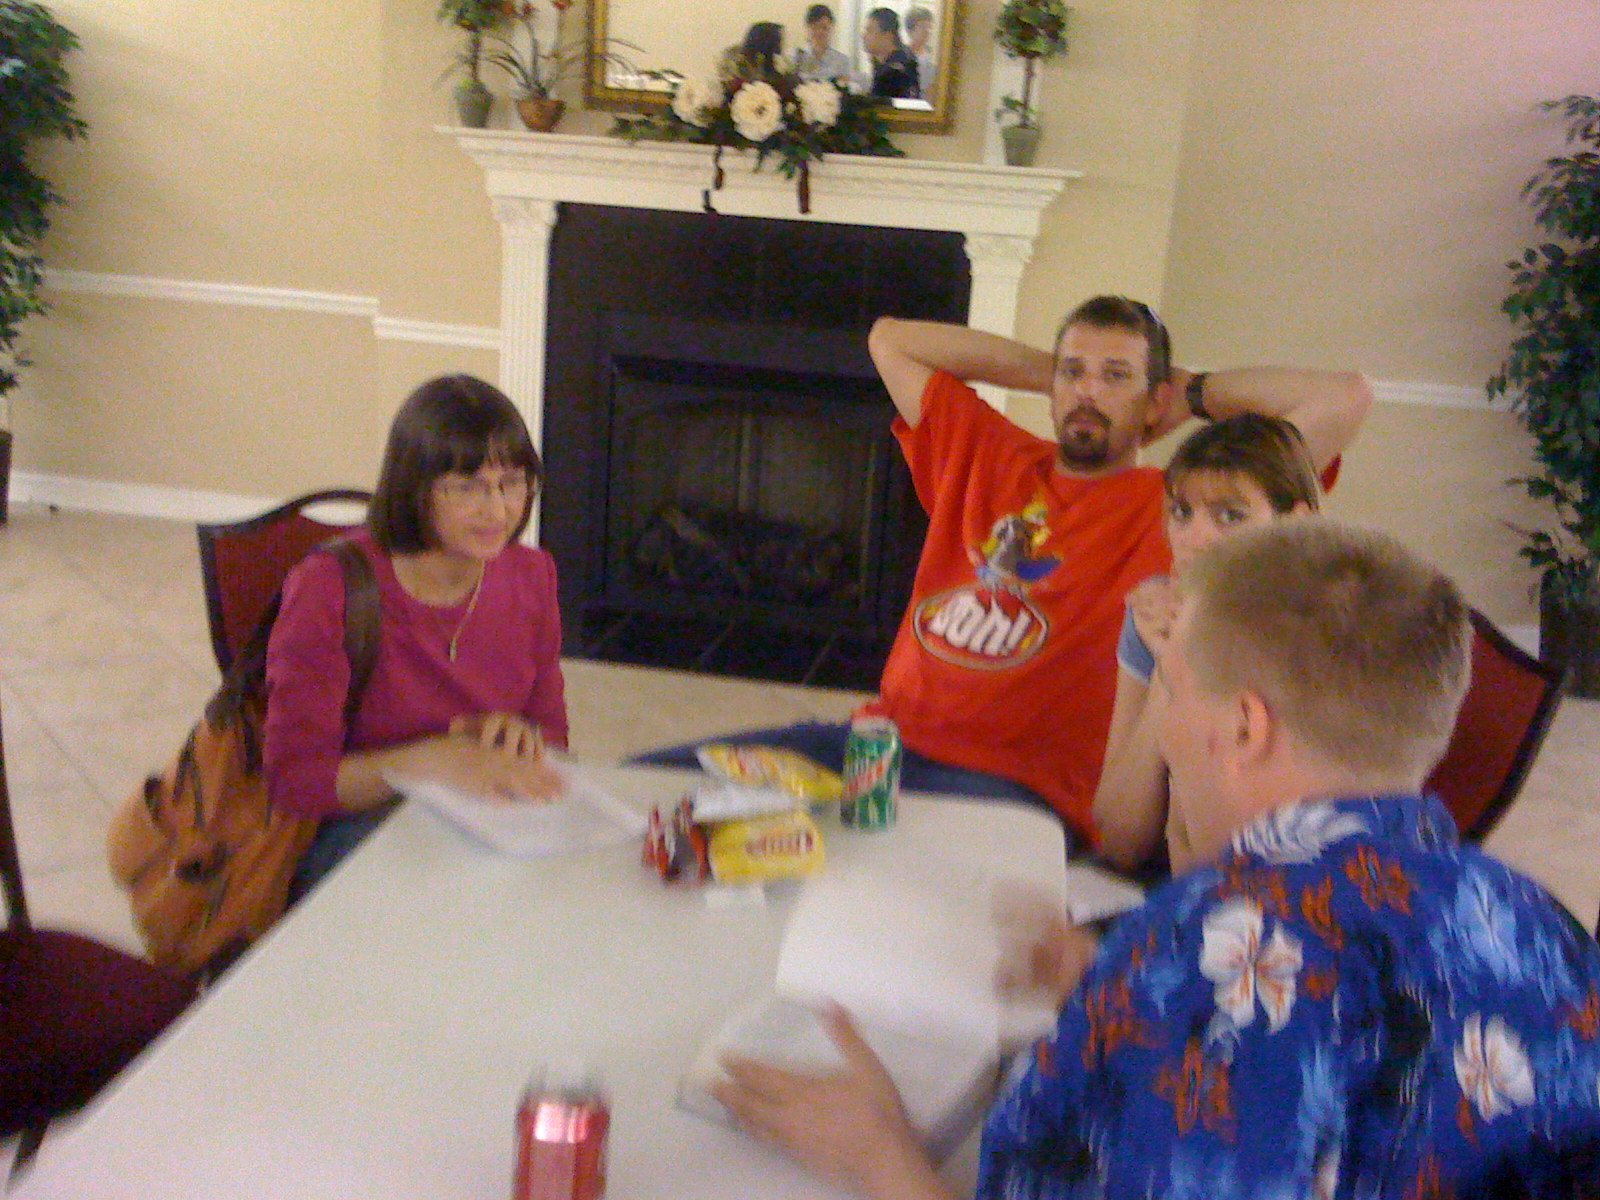 Peggy, Gene, Jessica, Shawn hanging out at Bible study Wednesdays Garnett